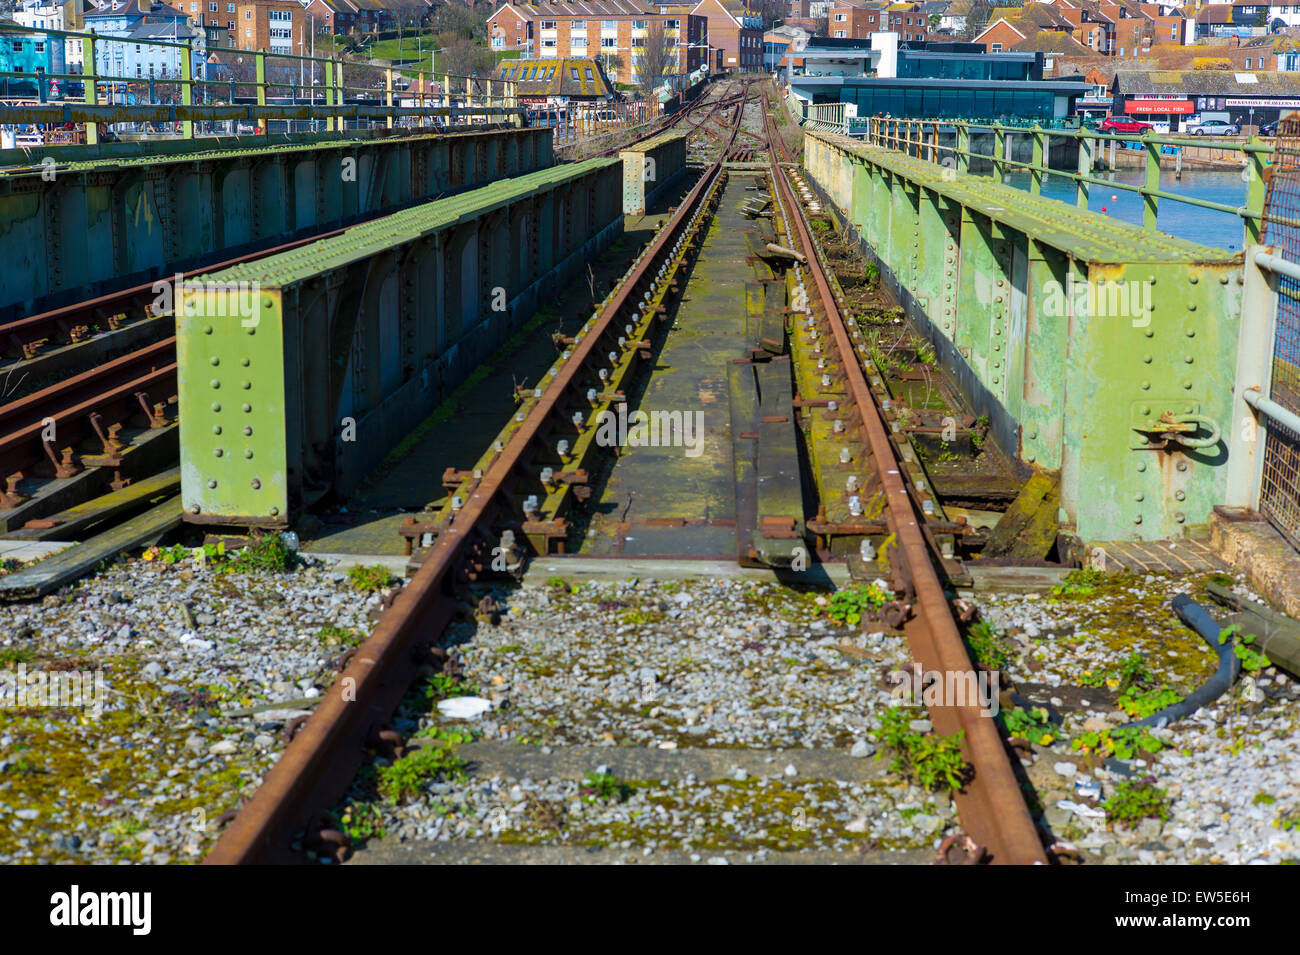 Disused Railway Line at Folkestone Kent - Stock Image